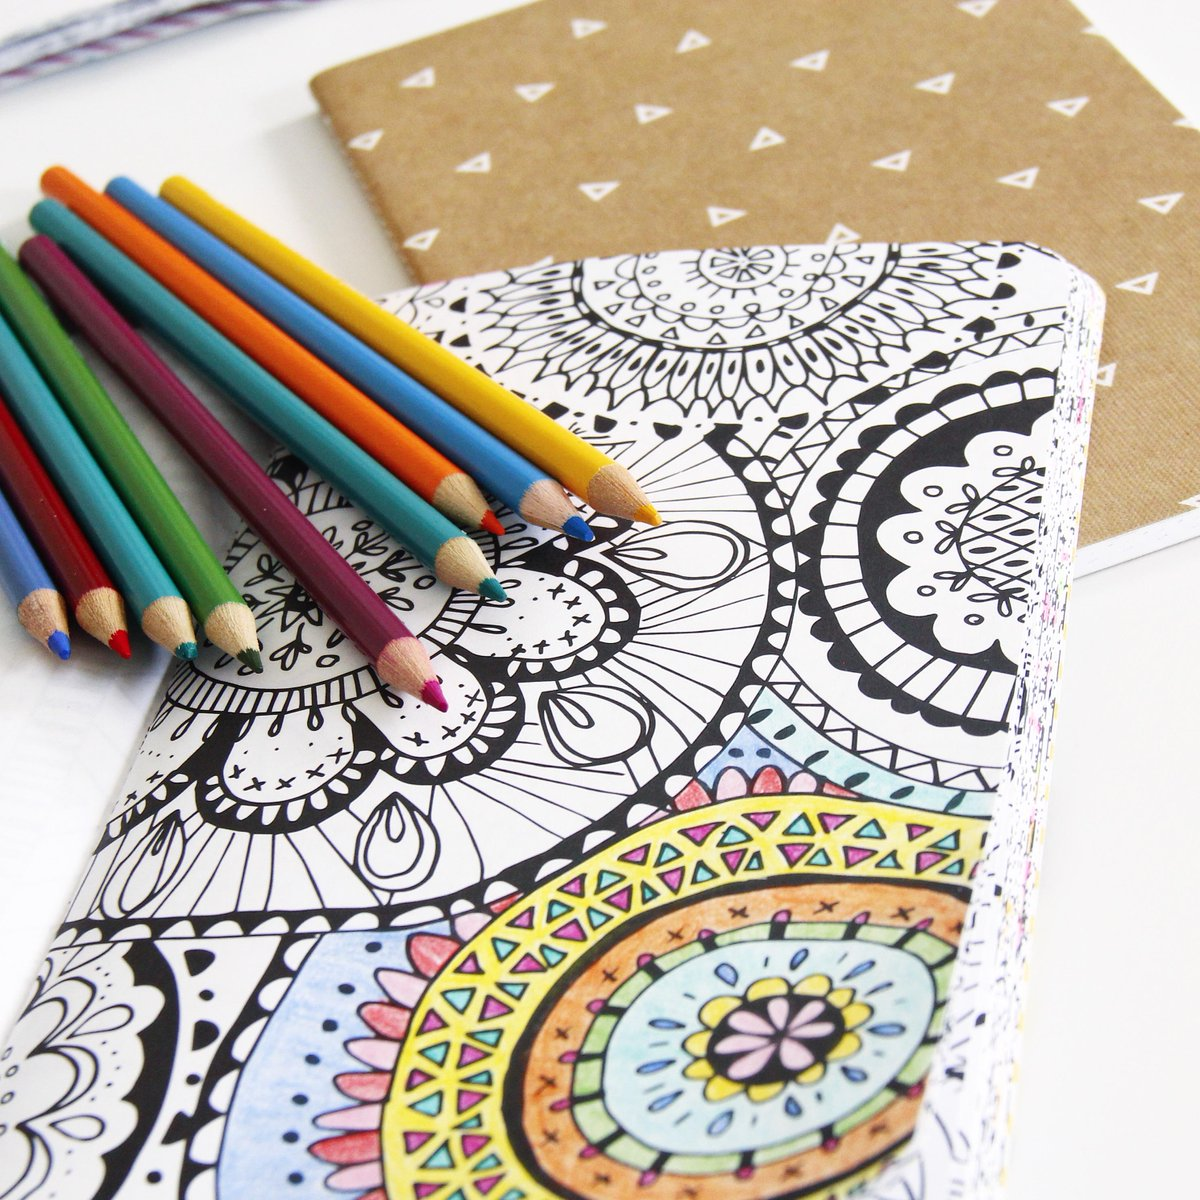 May Designs On Twitter Wondering Why Adult Coloring Books Are So In We Have Answers Read All About It The Blog Tco Ossi96HQwg